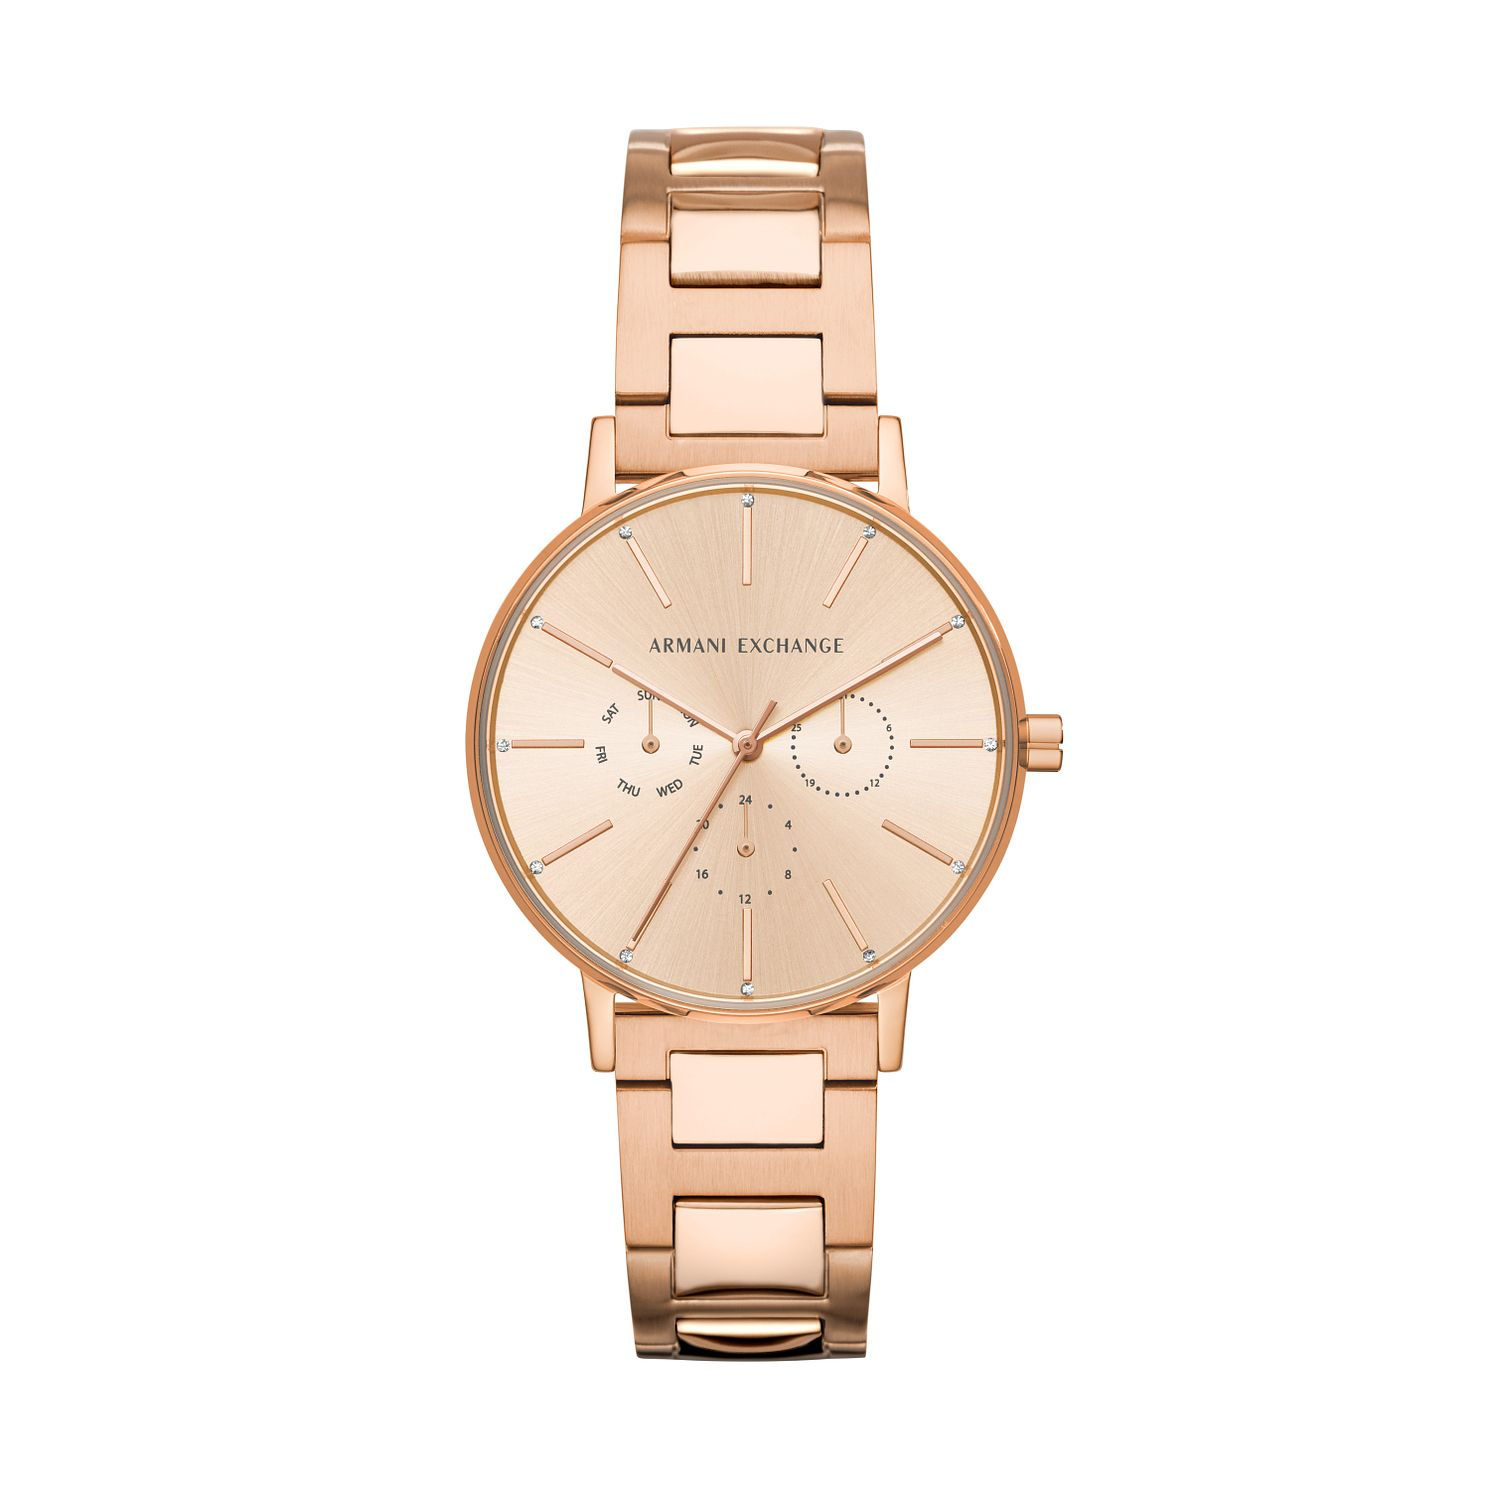 Armani Exchange Rose Gold Dial Stainless Steel Watch - Product number 9431373